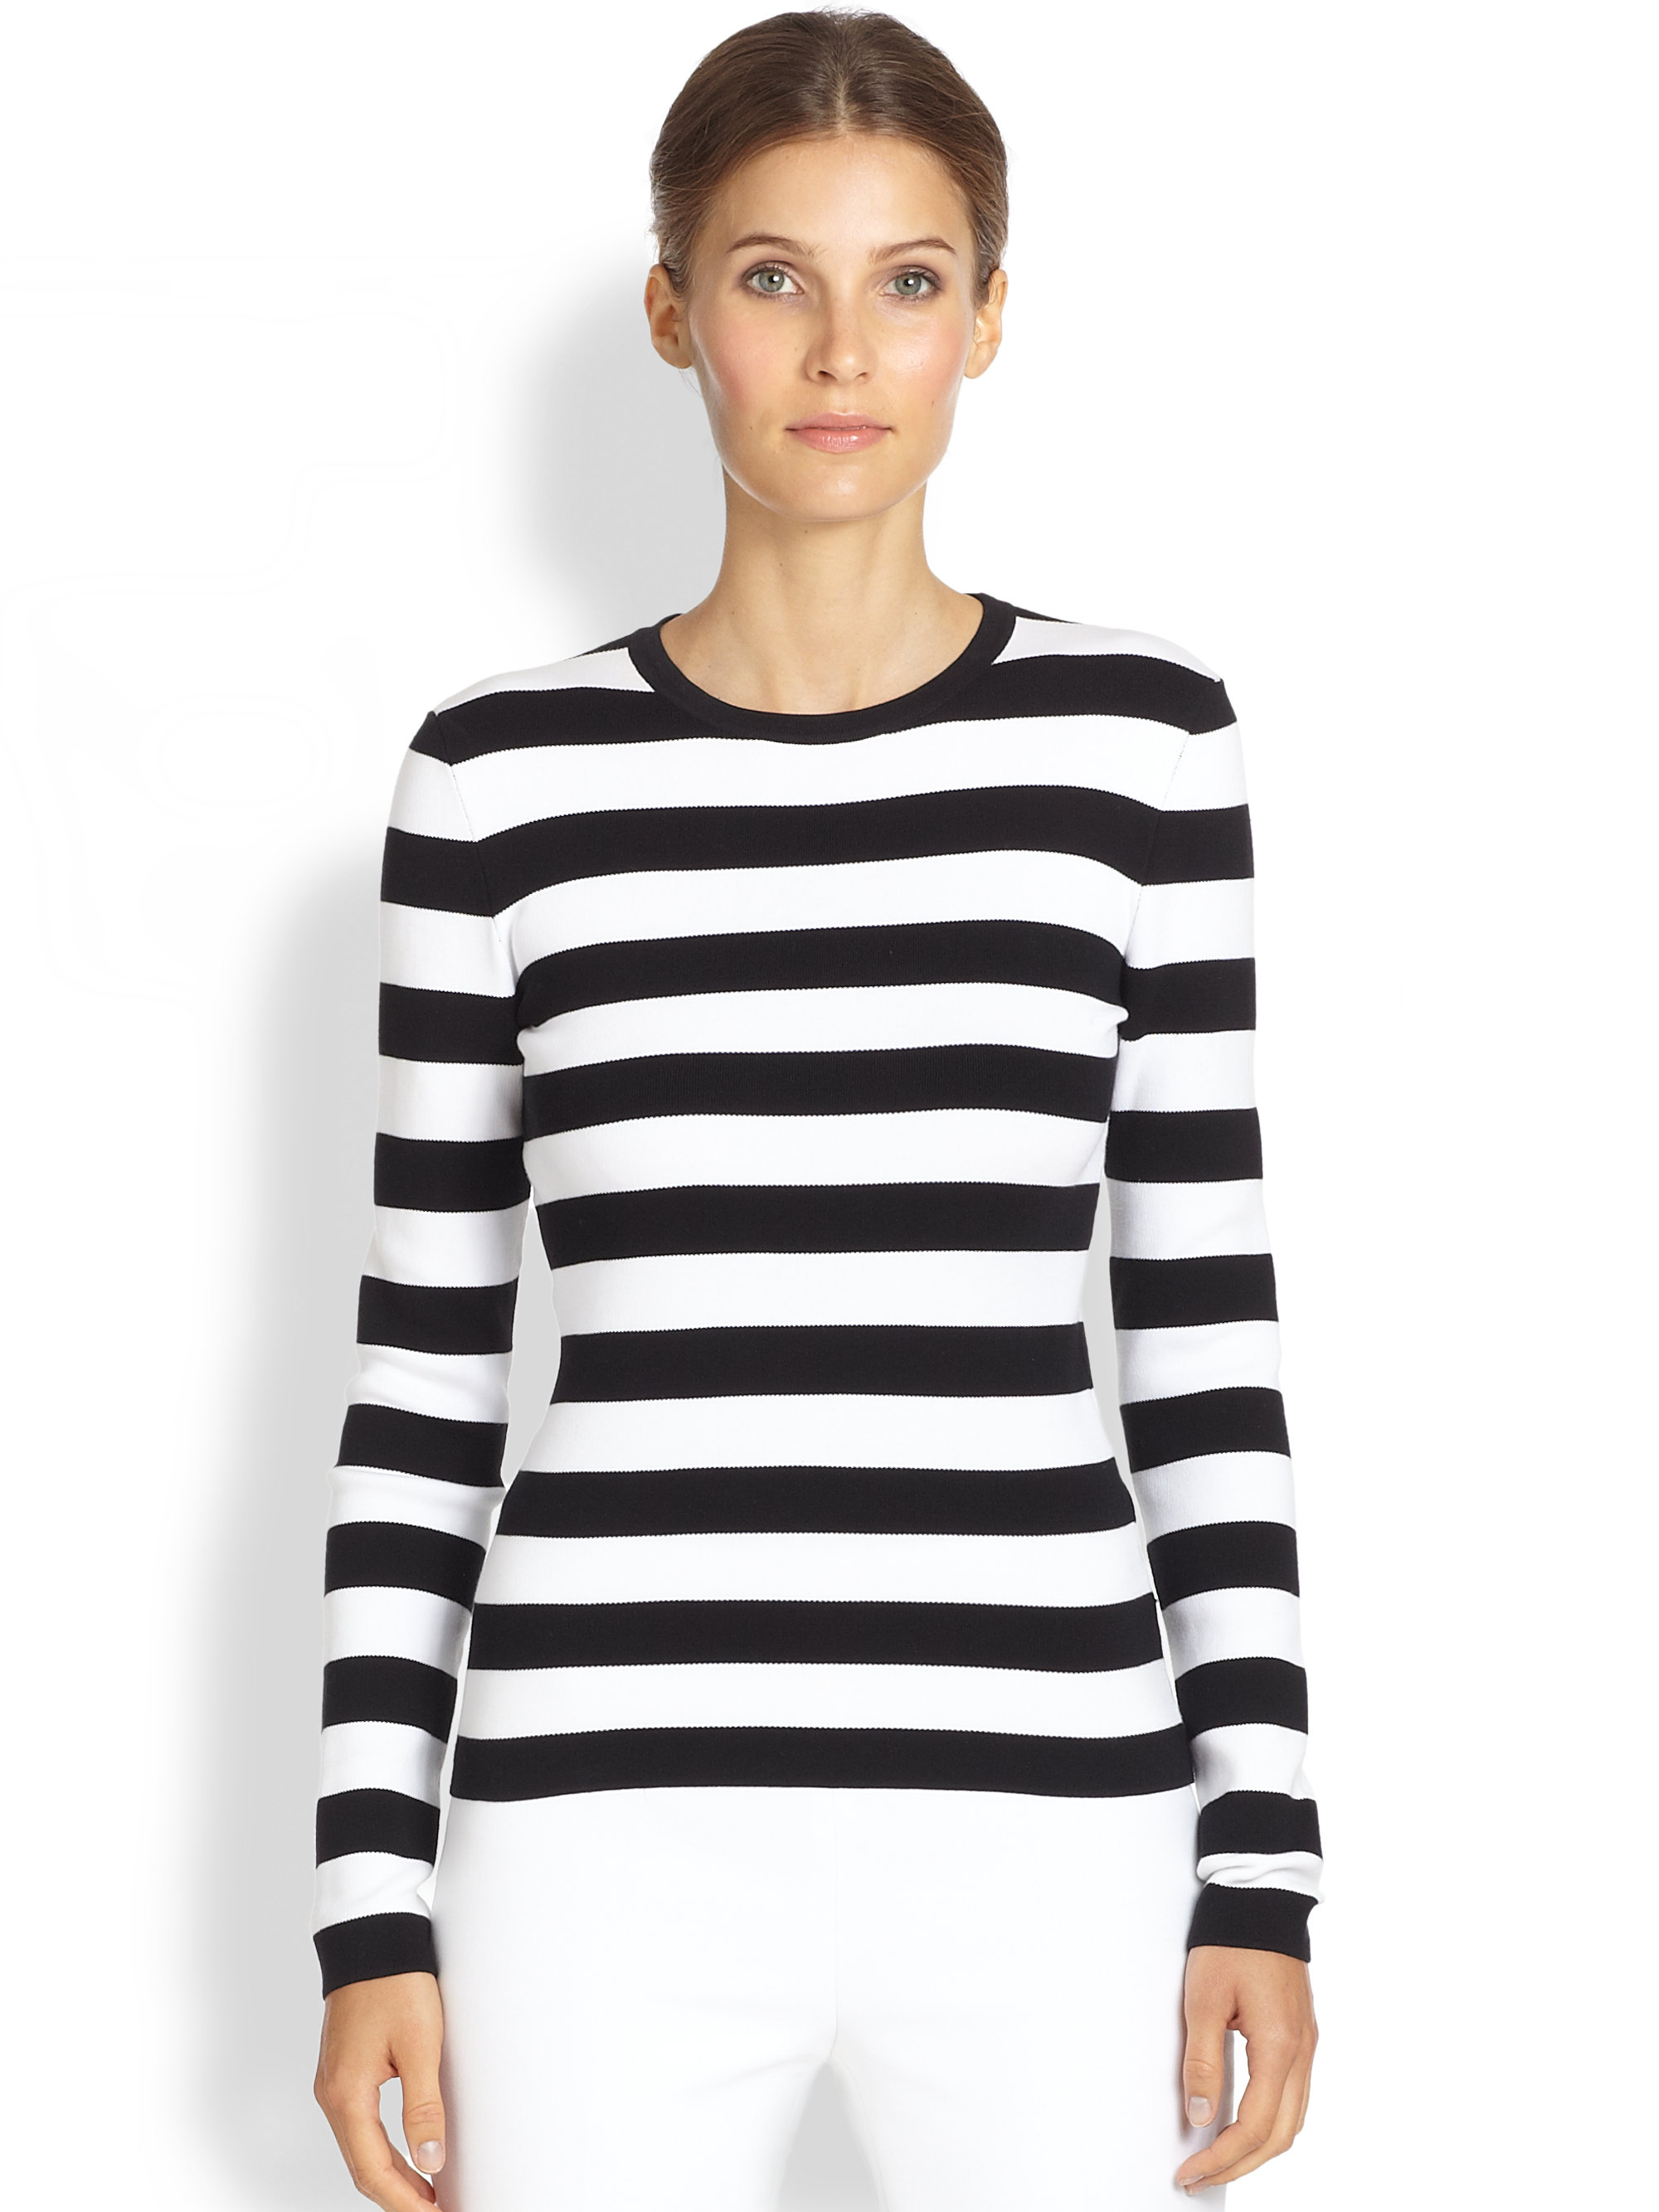 Lyst michael kors striped tee in black for Best striped t shirt